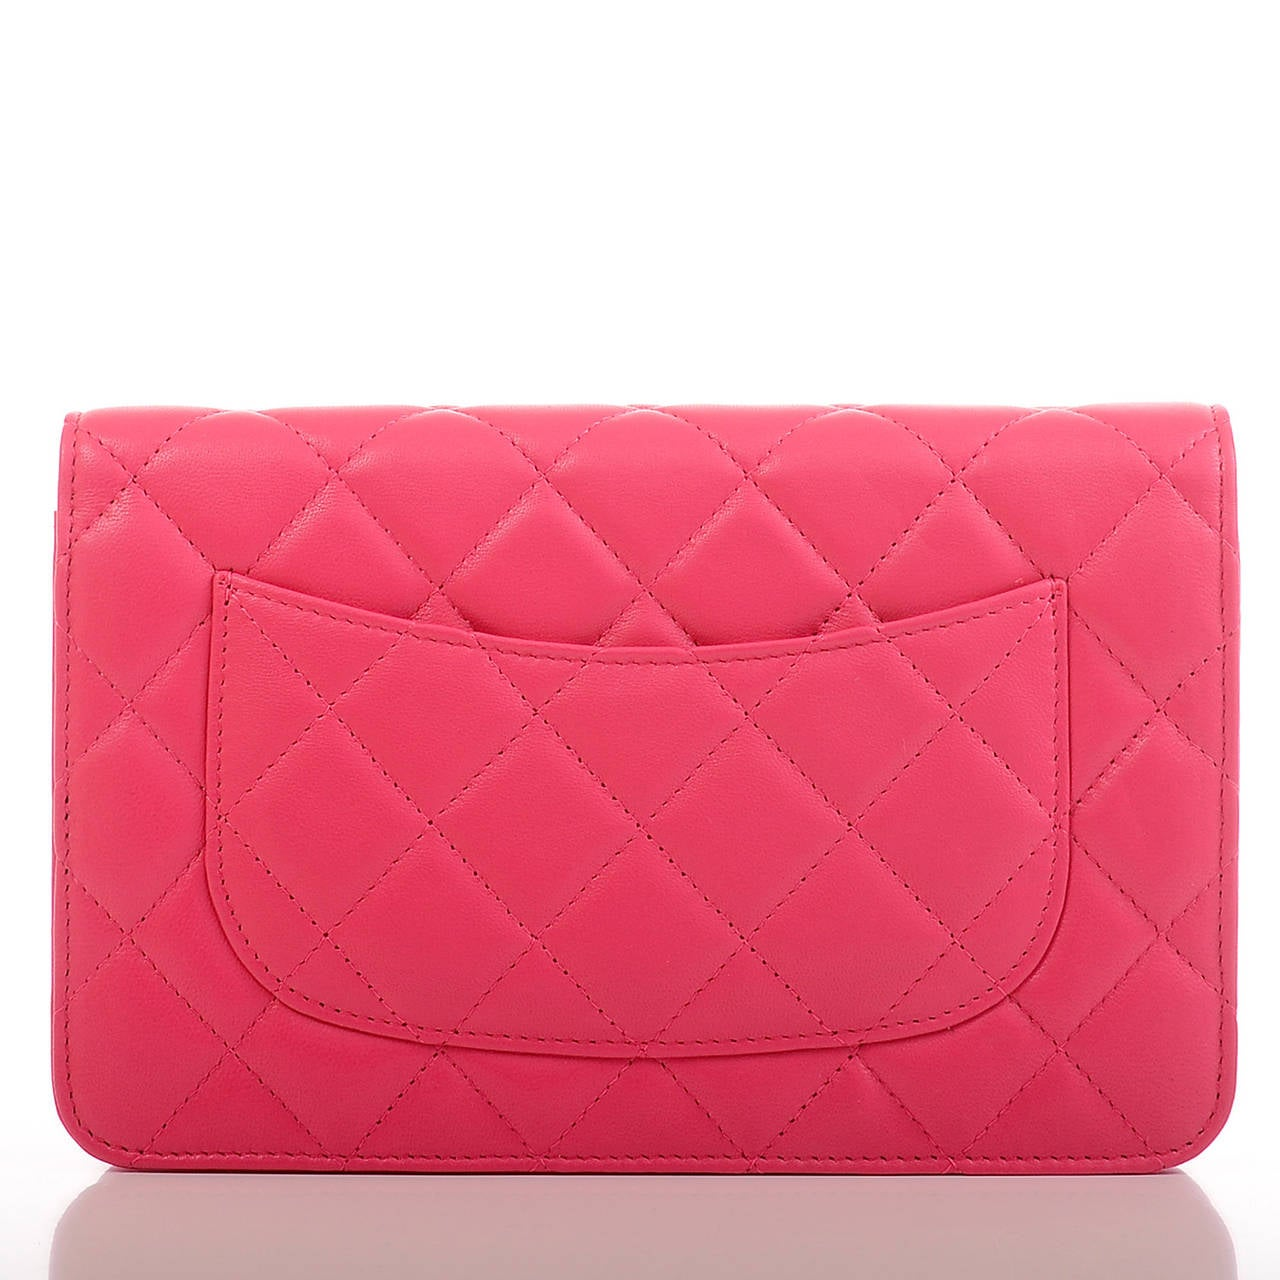 Chanel Fuchsia Pink Classic Quilted Lambskin Wallet On Chain (WOC) For Sale 1